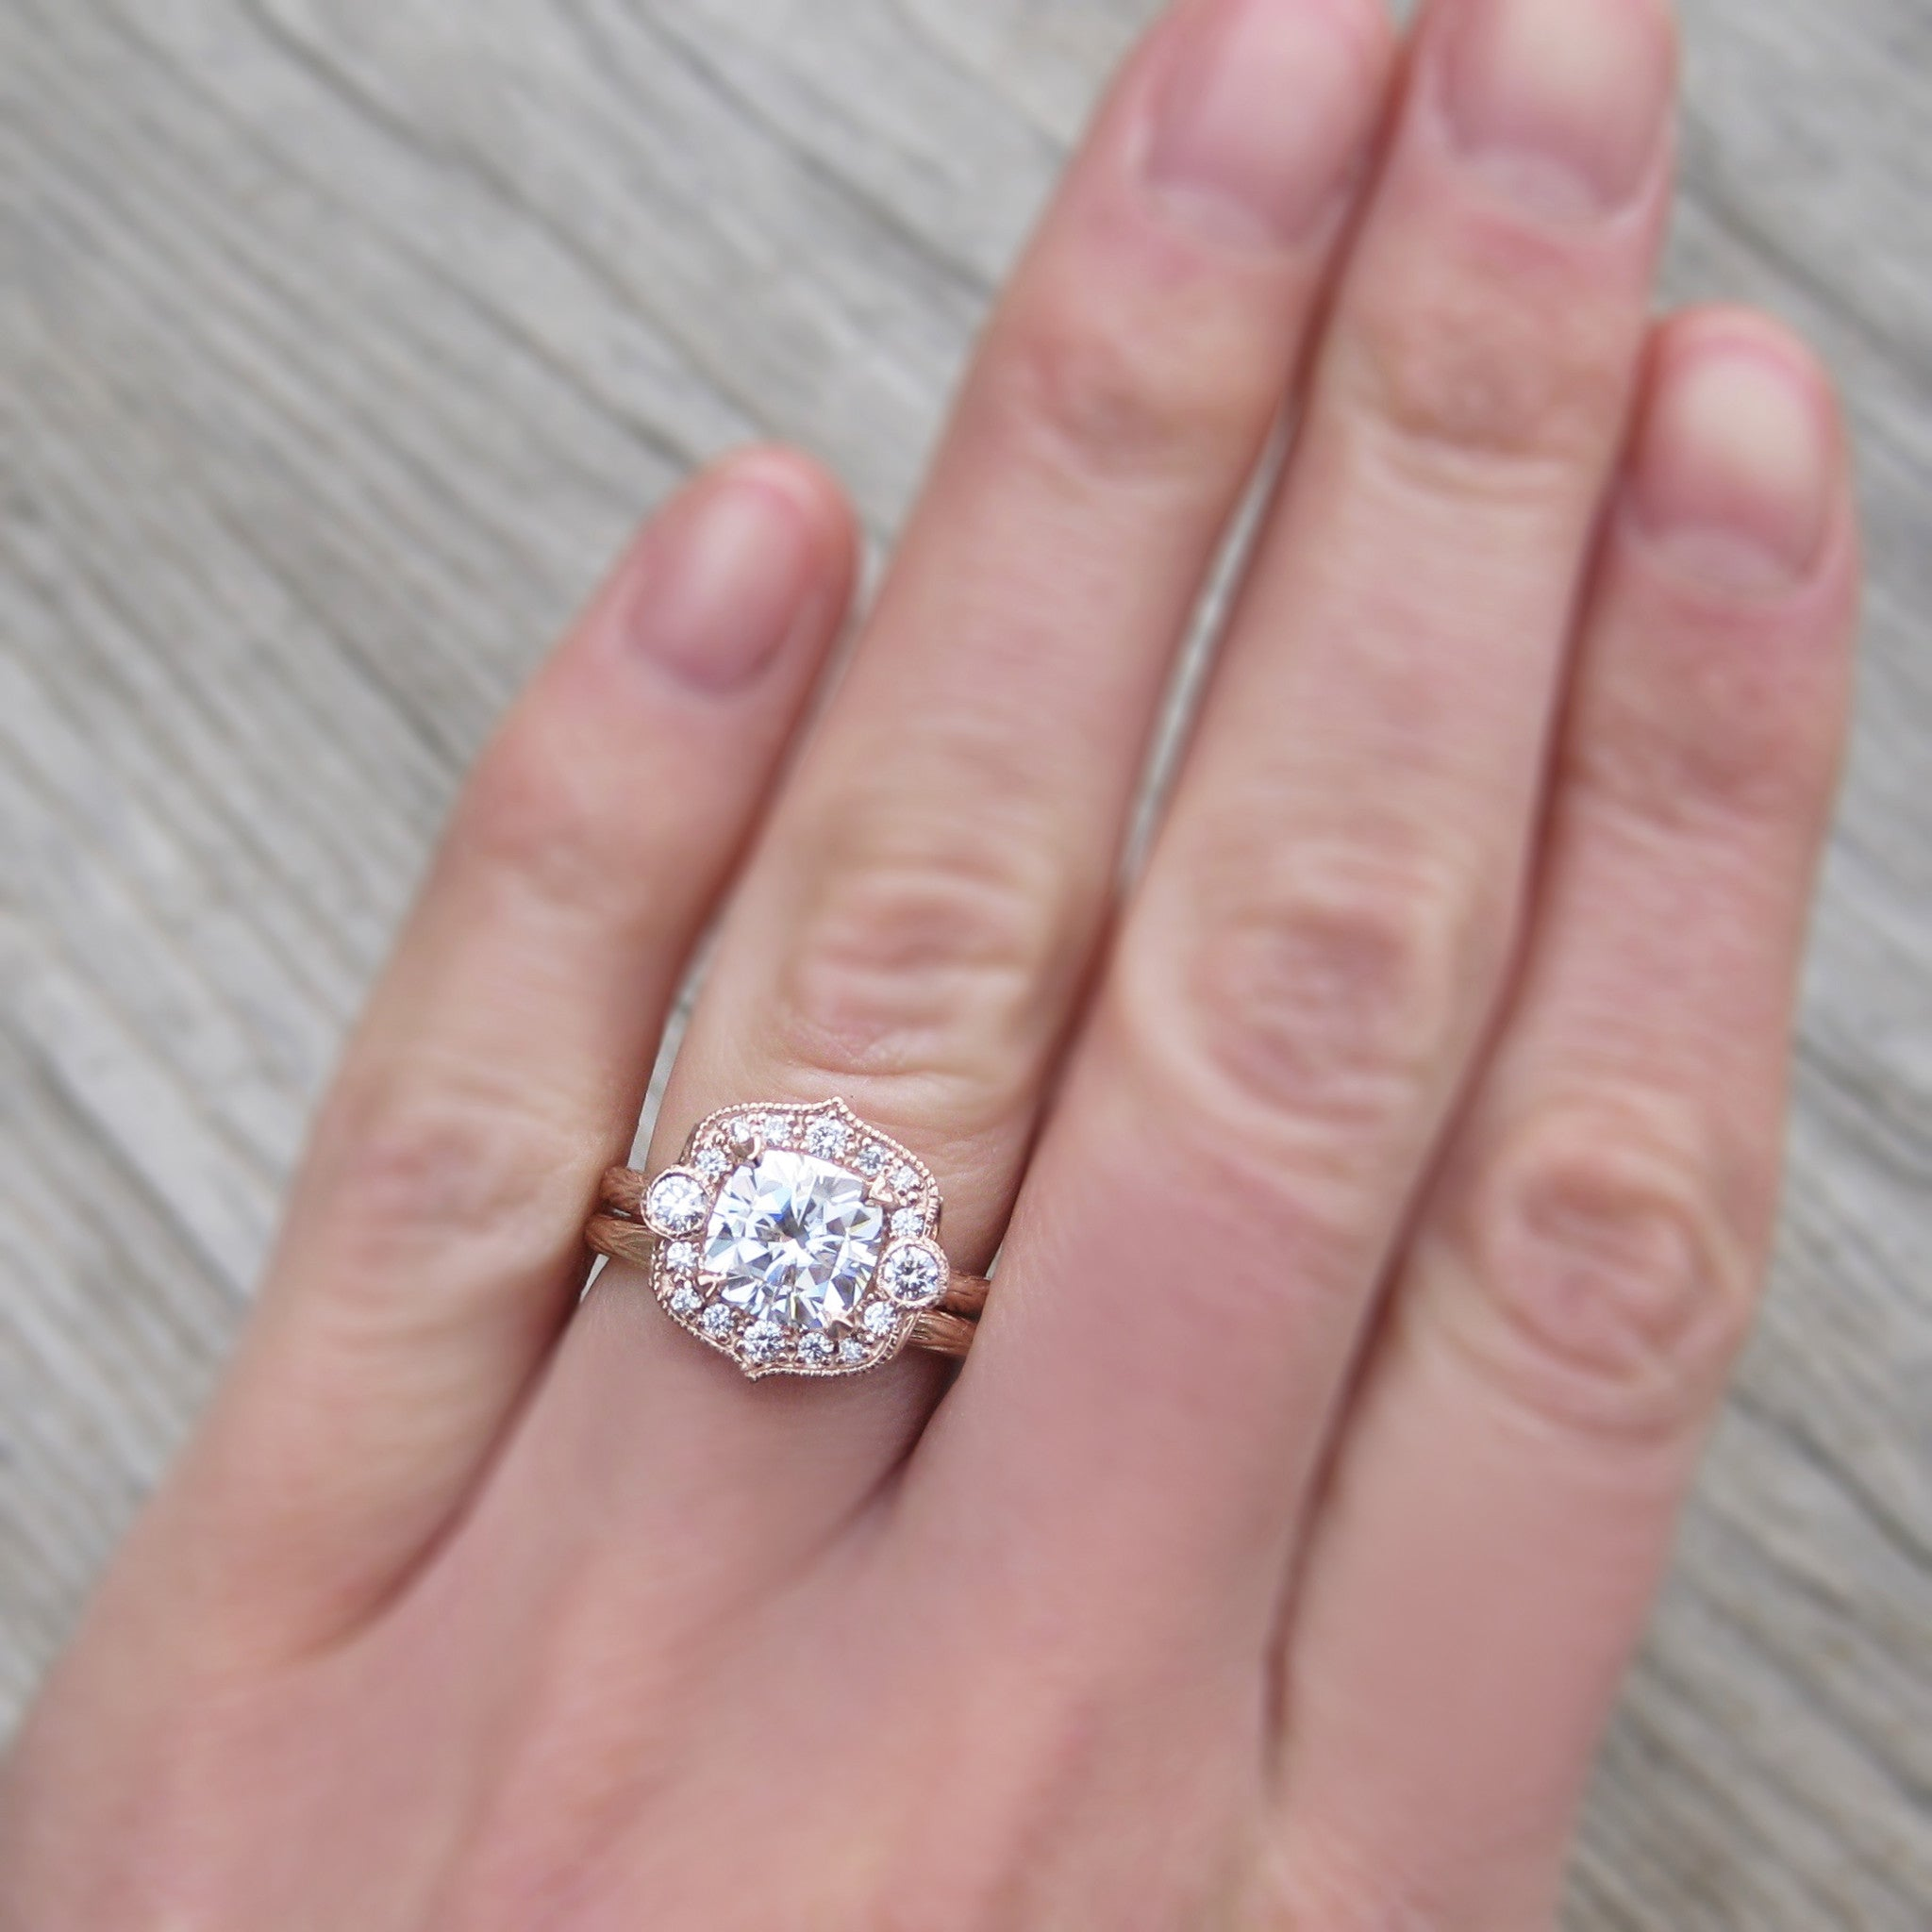 Cushion Moissanite Engagement Ring & Diamond Halo (2ct) | Kristin ...